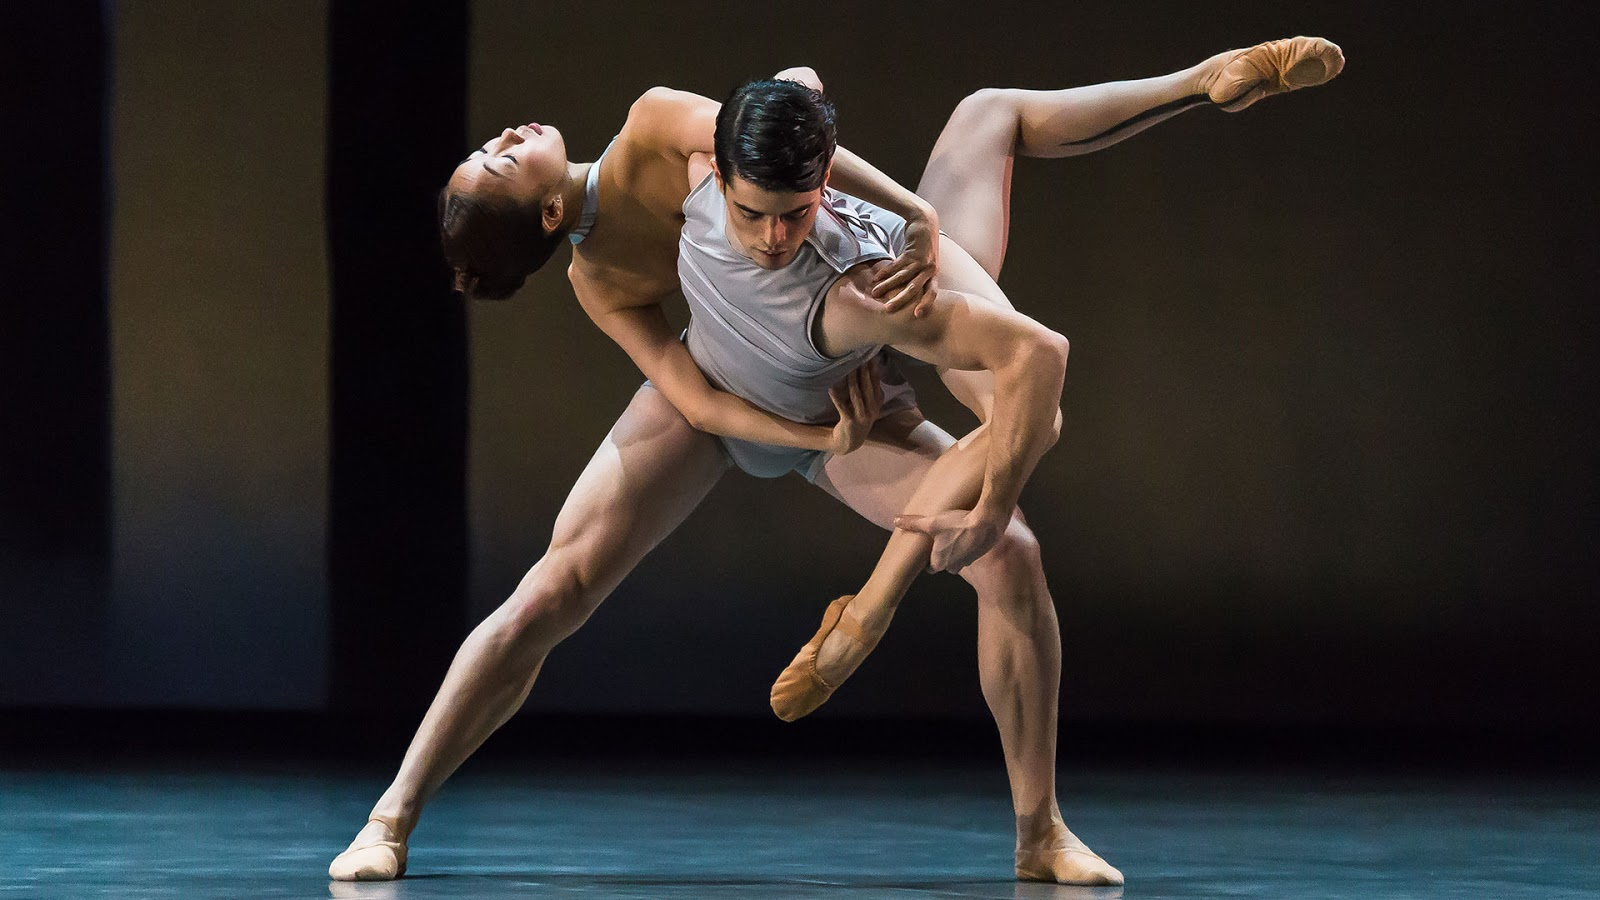 Stunning Footage Of Contemporary Ballet Performances